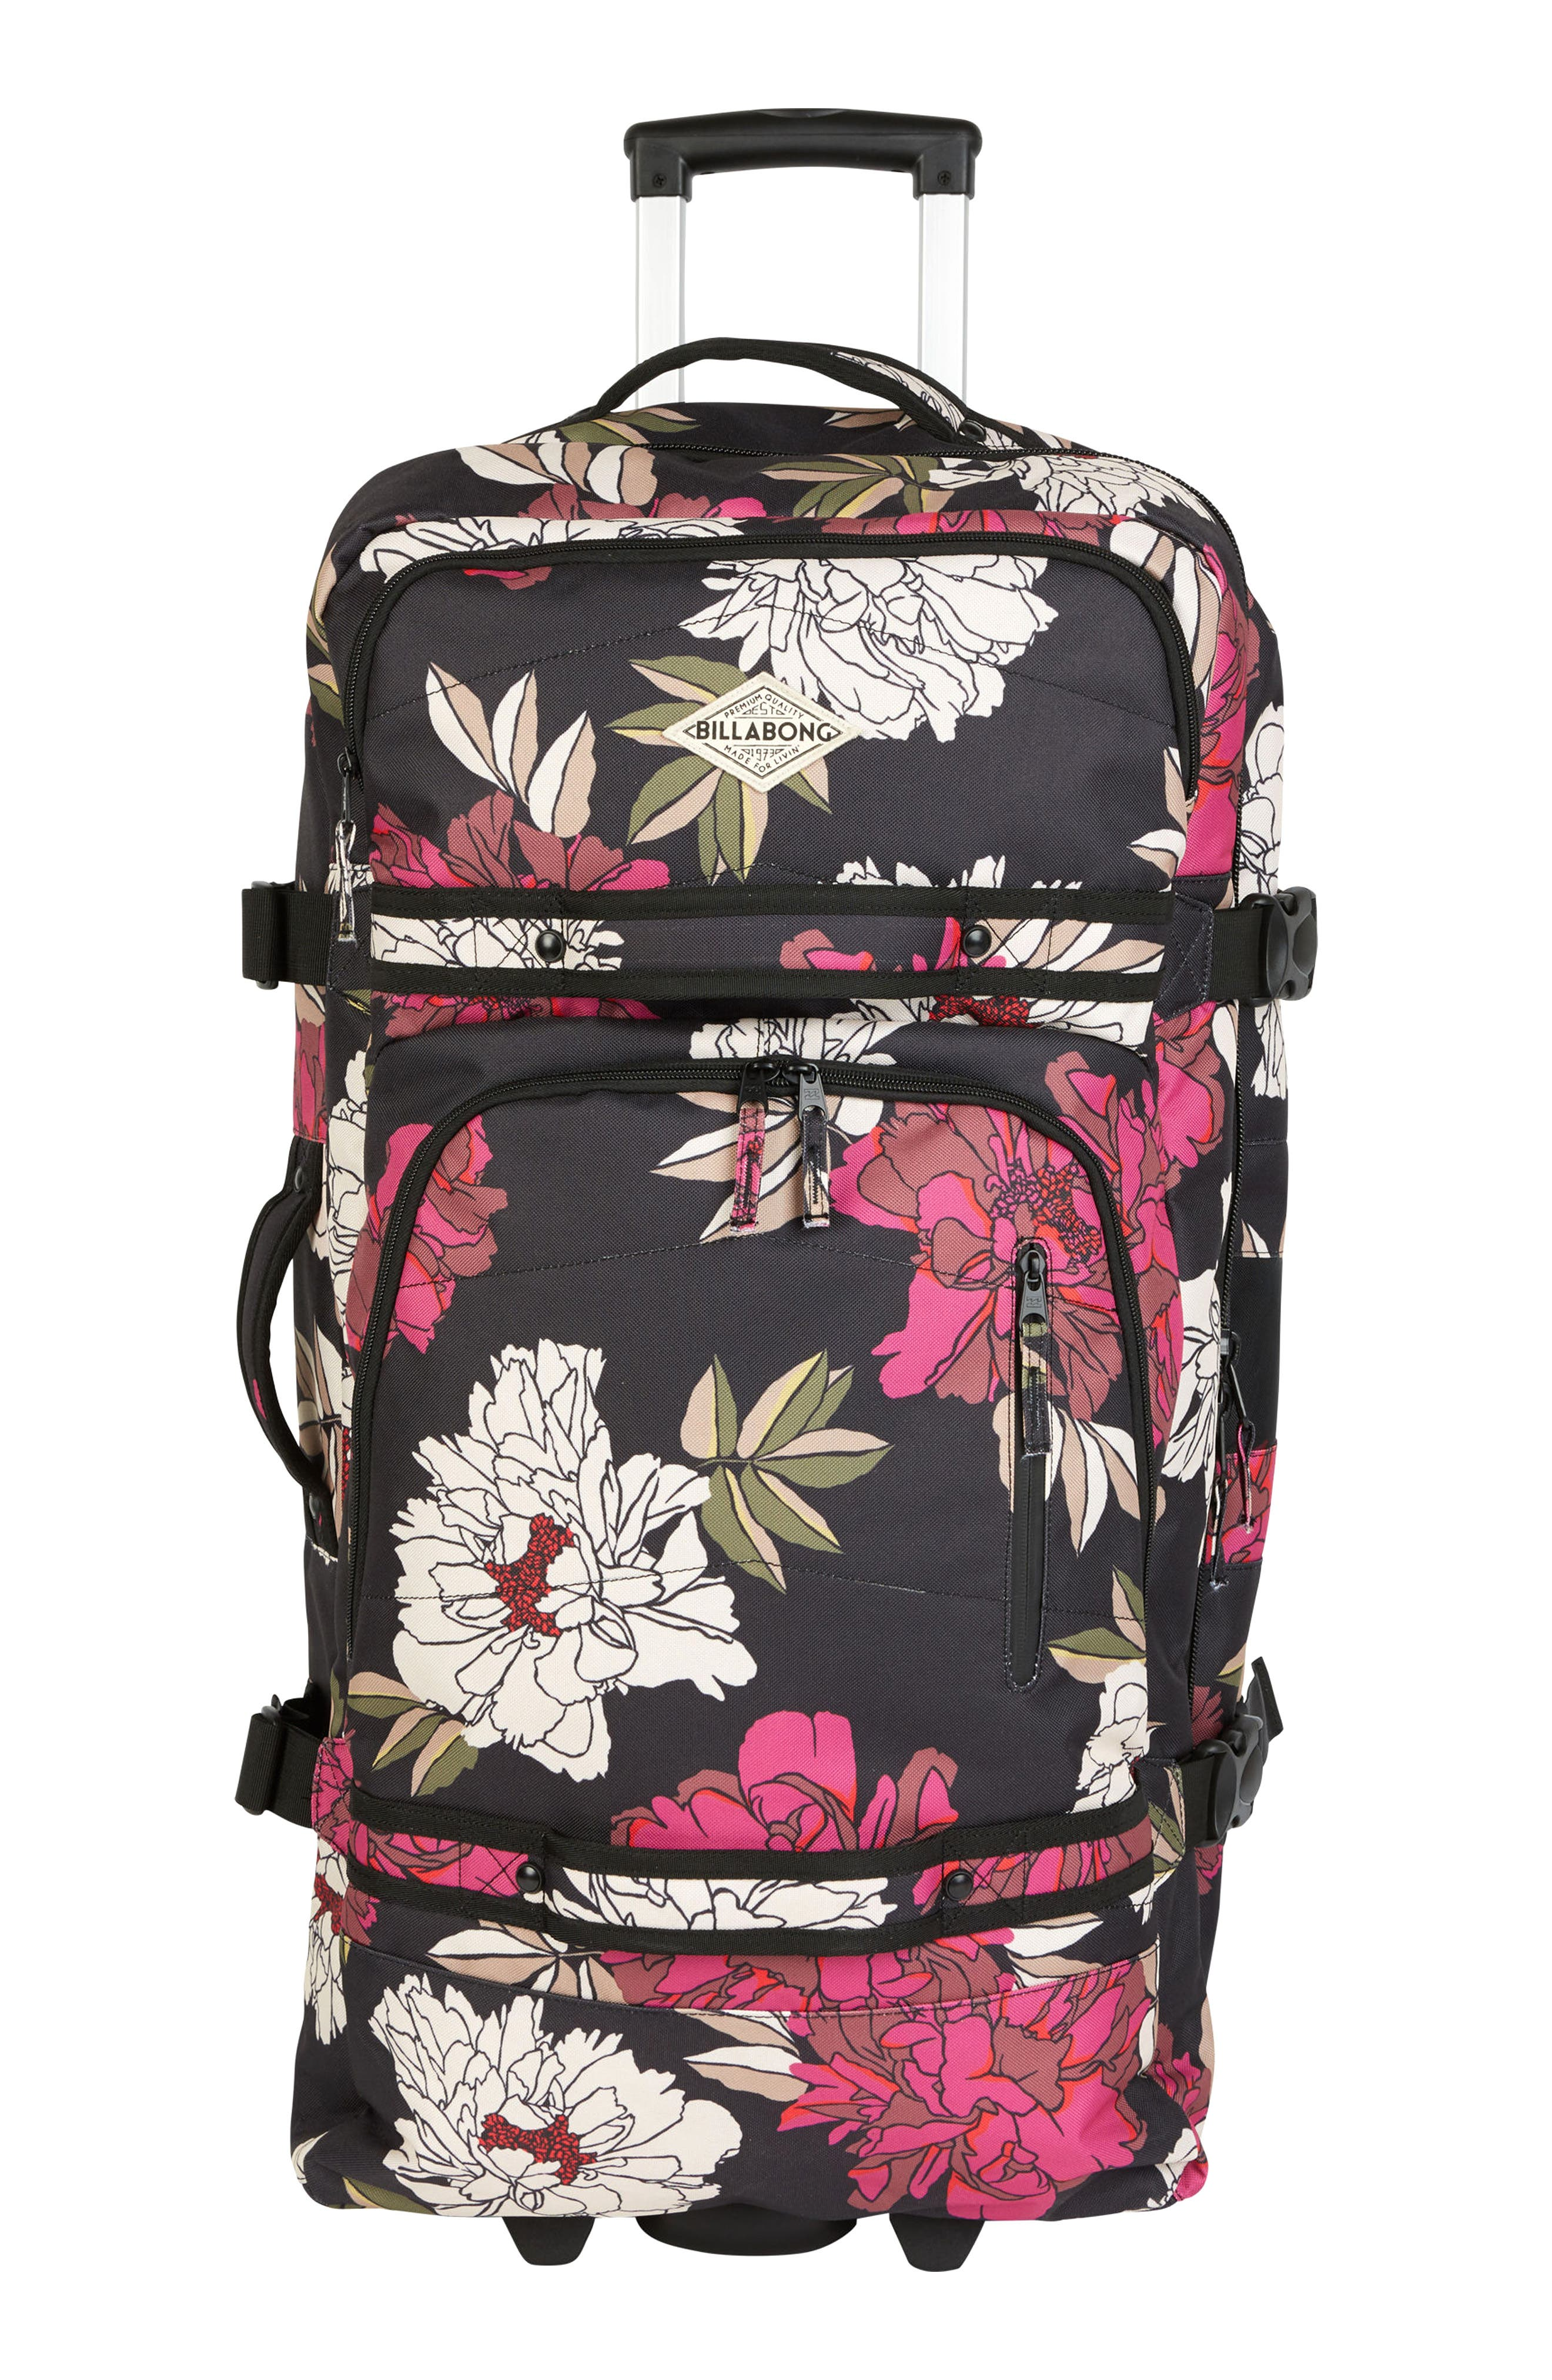 Keep It Rollin Duffel Bag,                         Main,                         color, Rebel Pink